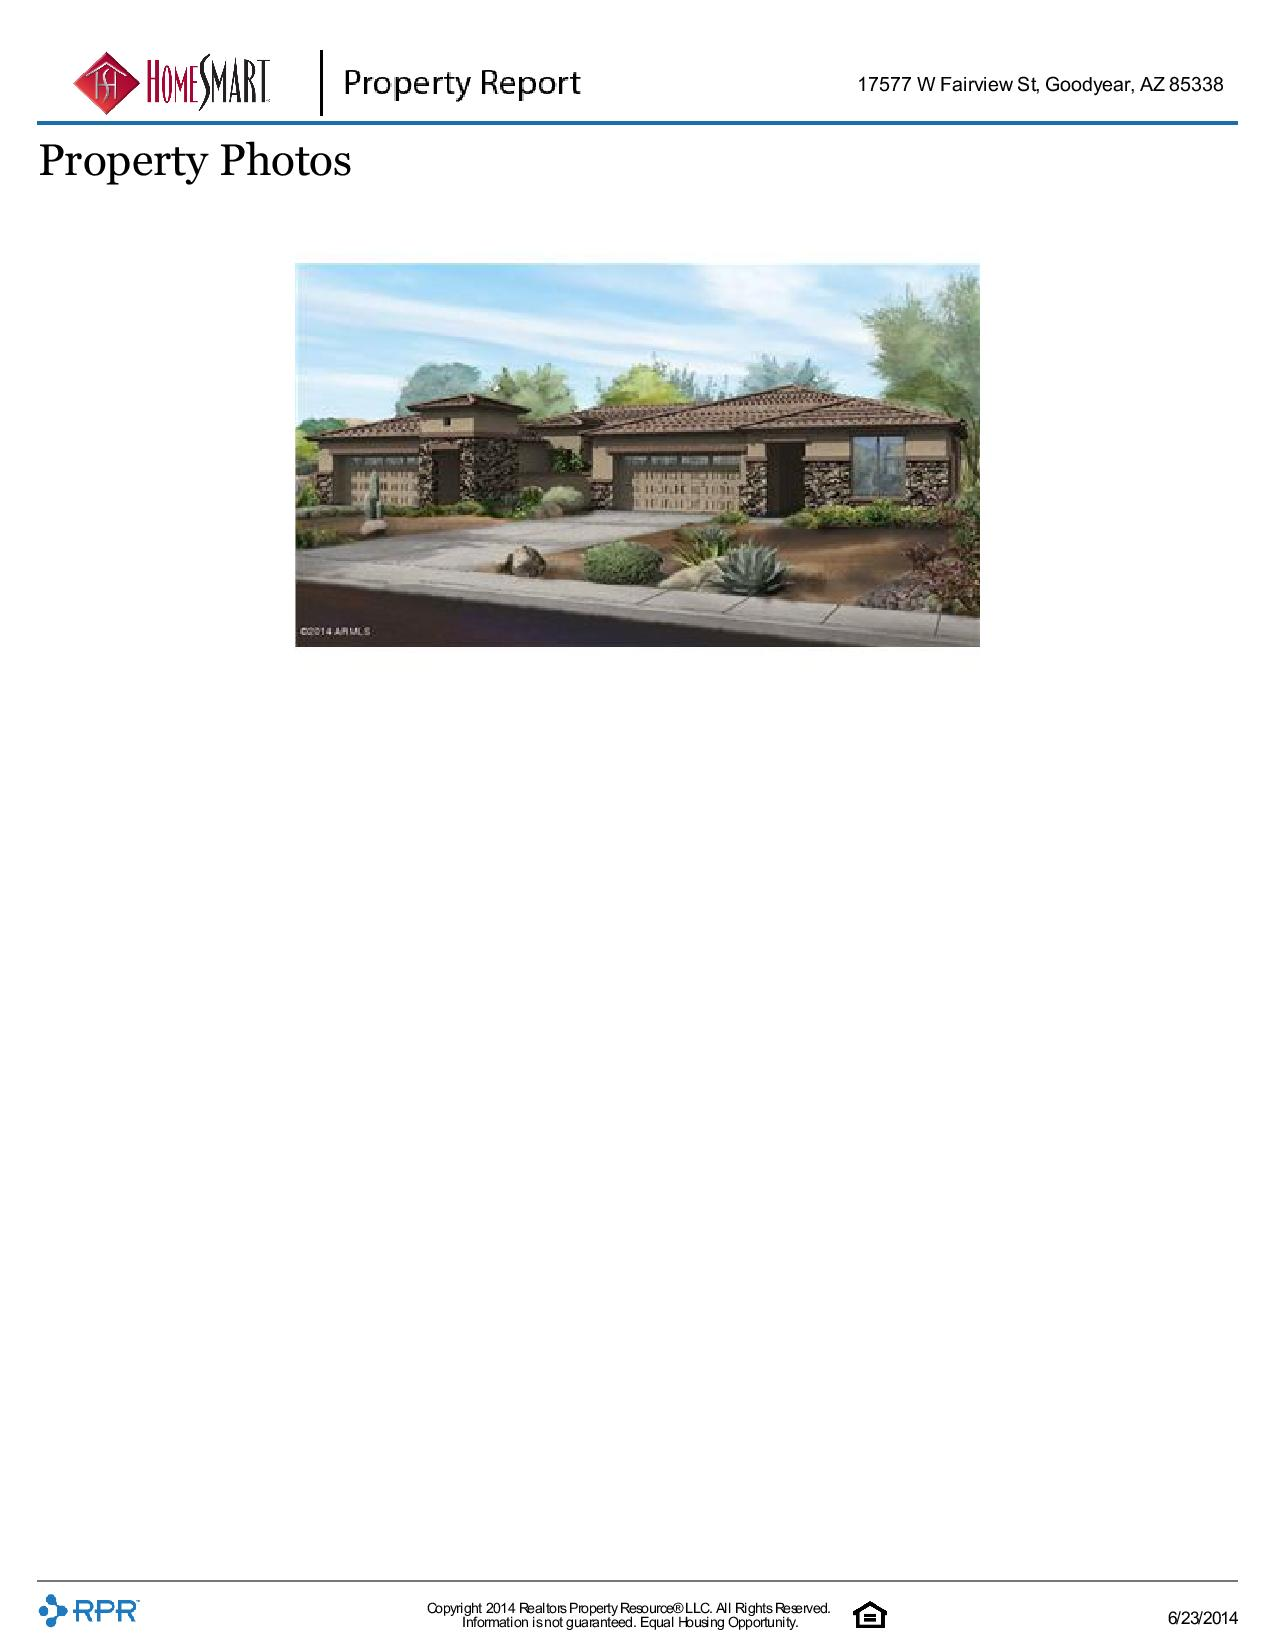 17577-W-Fairview-St-Goodyear-AZ-85338-page-005